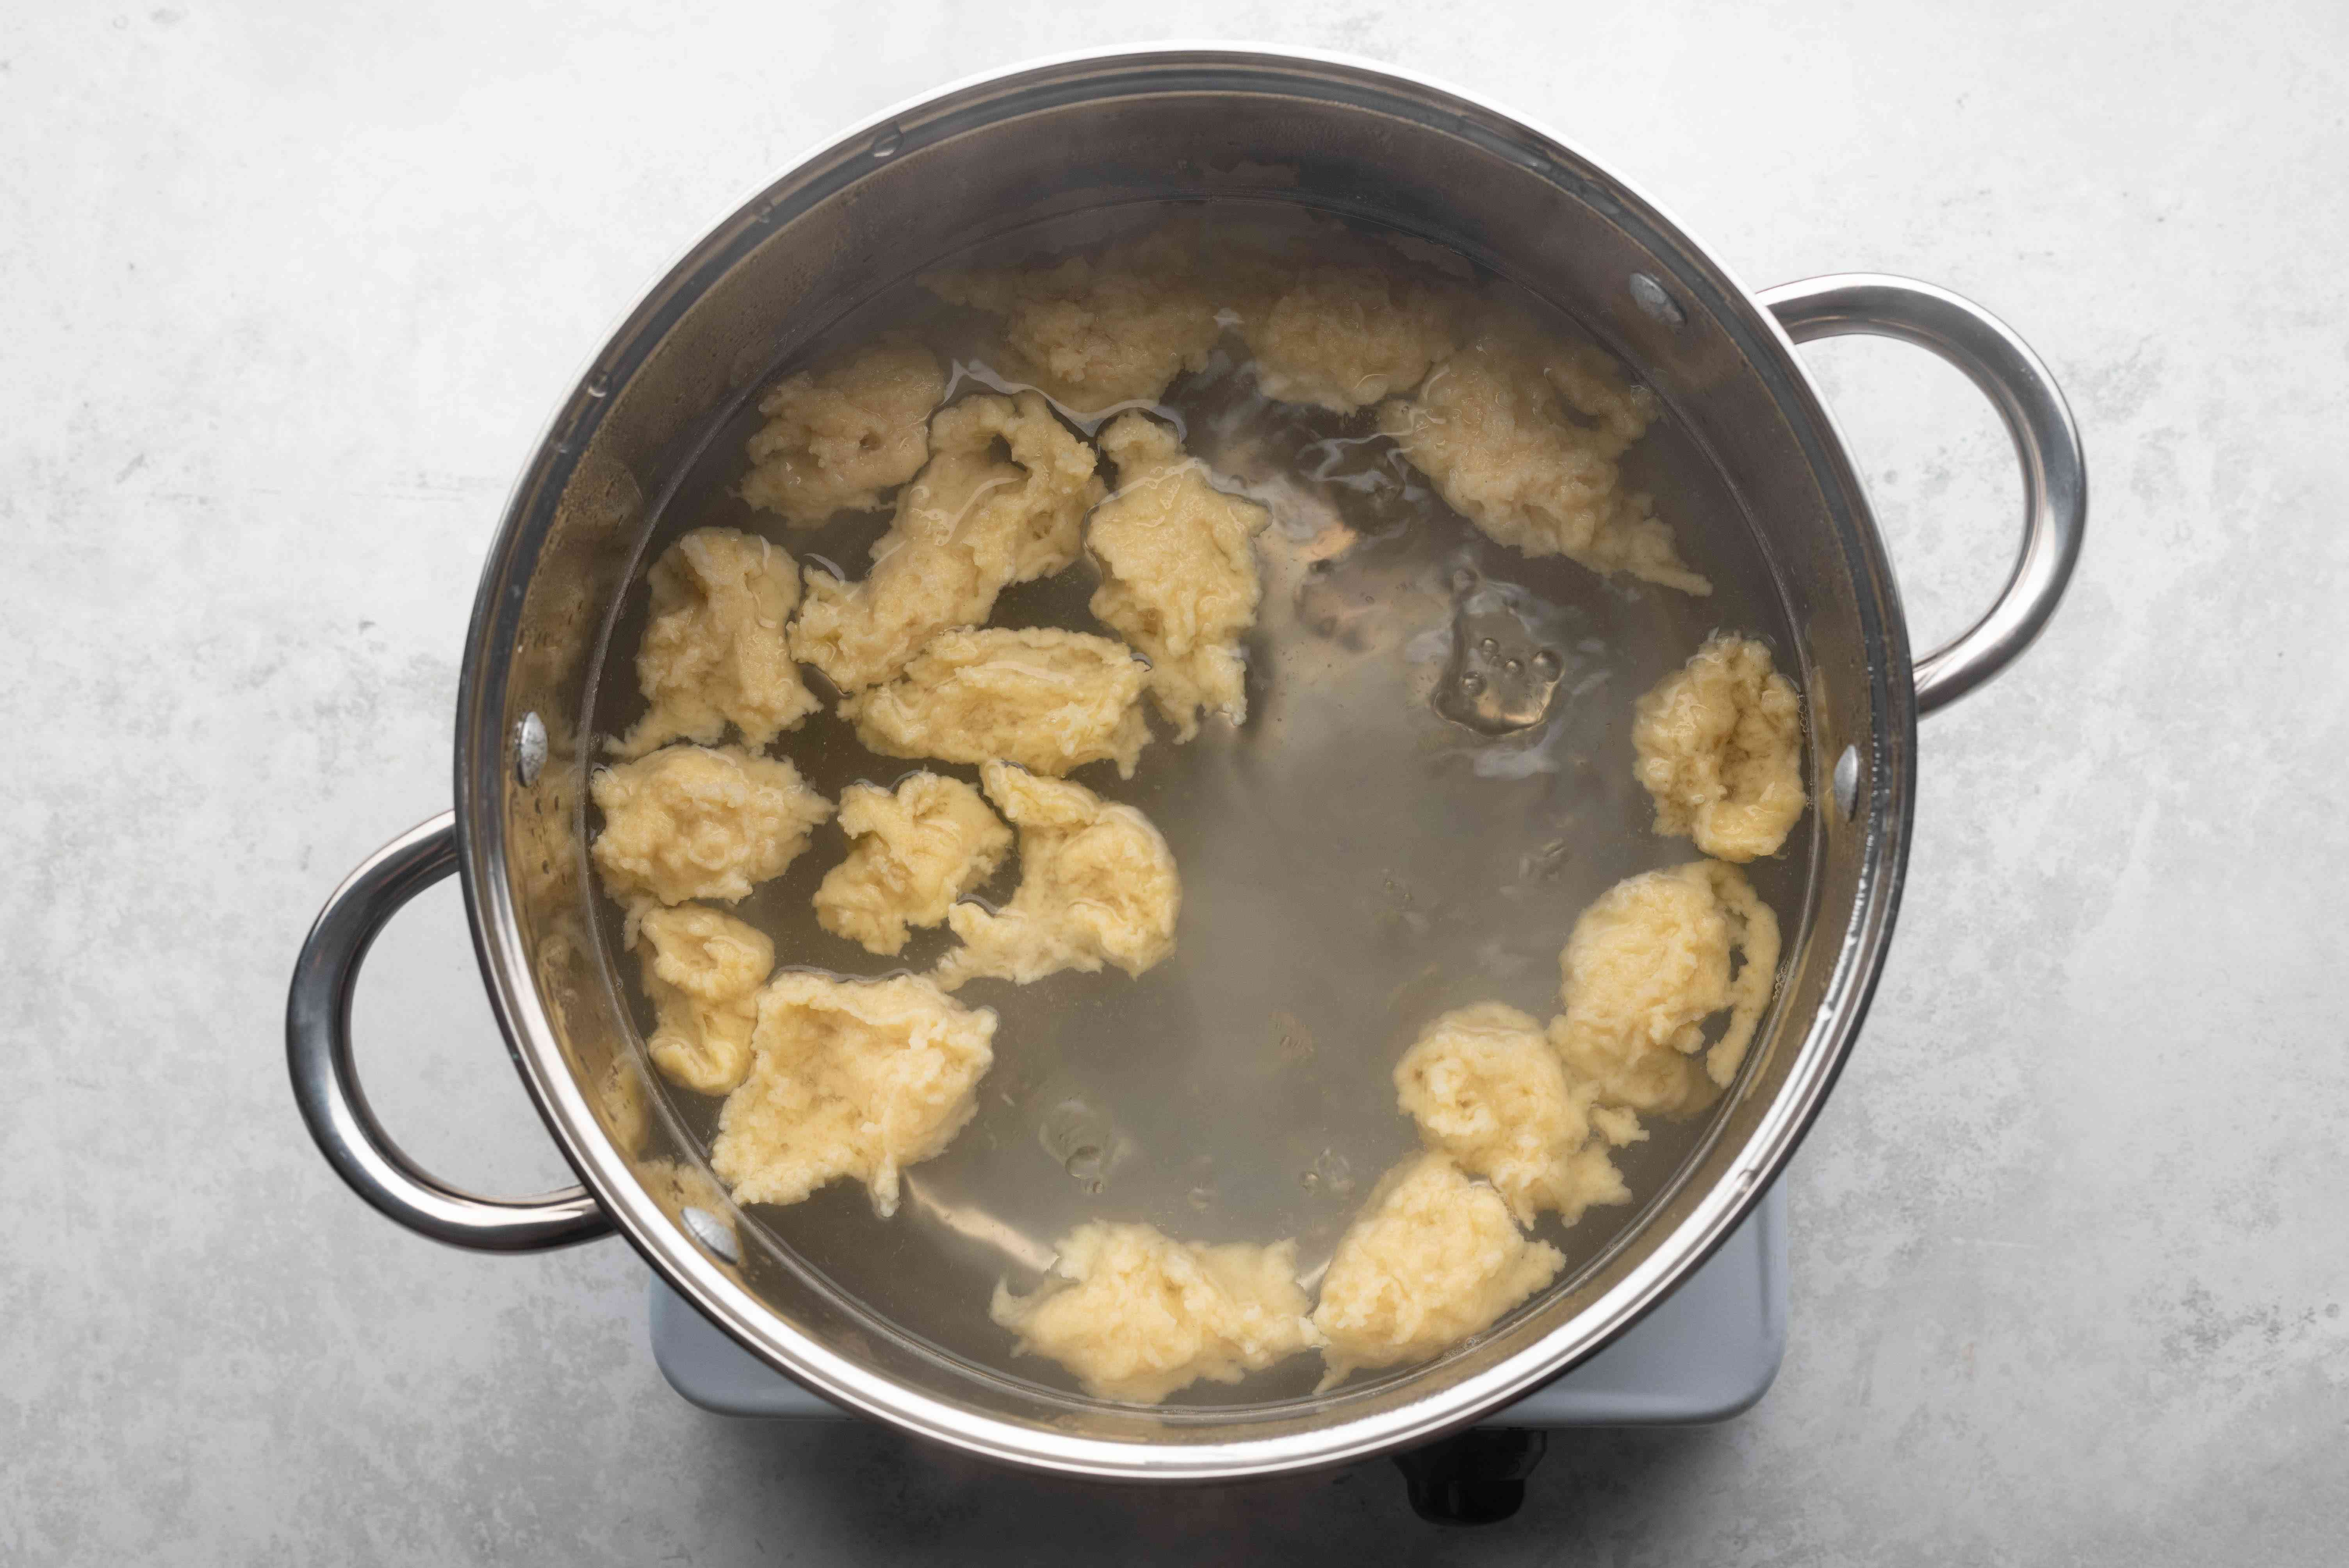 dumpling cooking in a pot with water